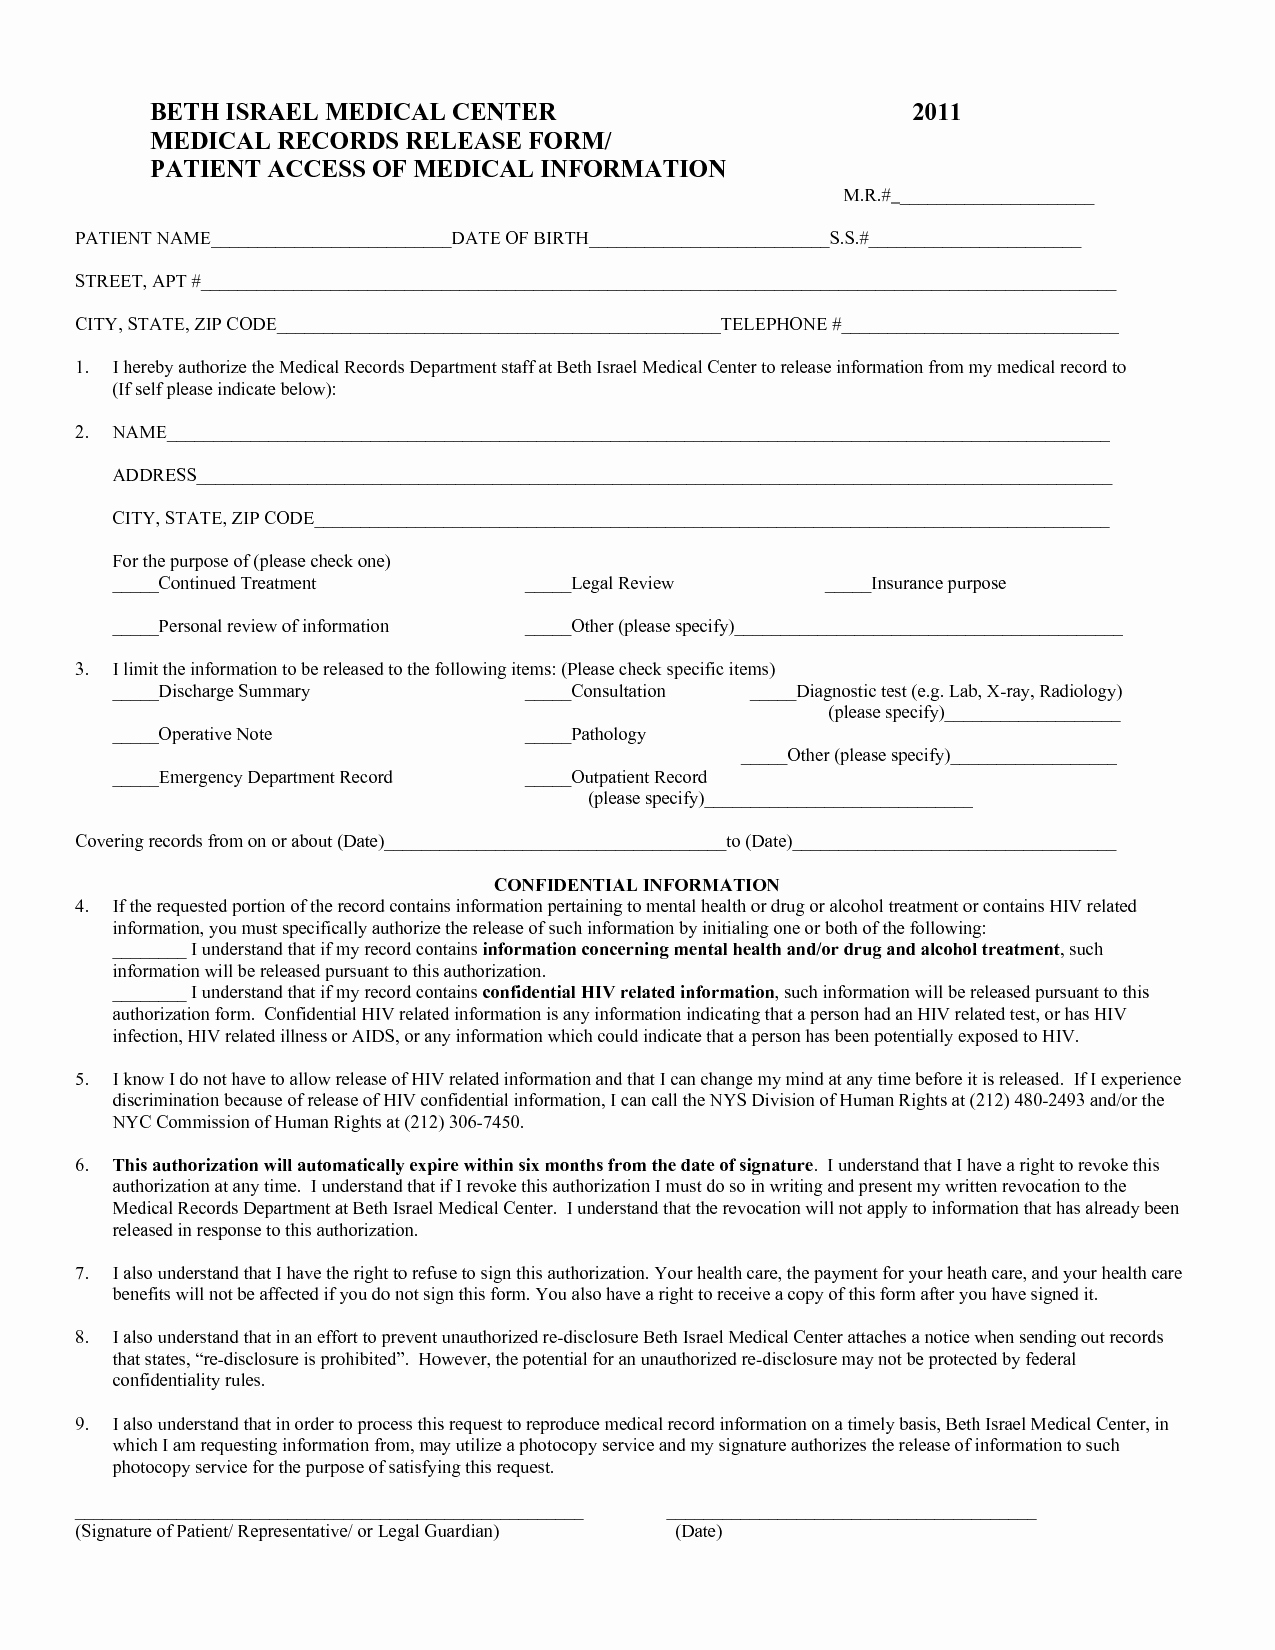 Medical Records form Template Awesome Medical form Templates